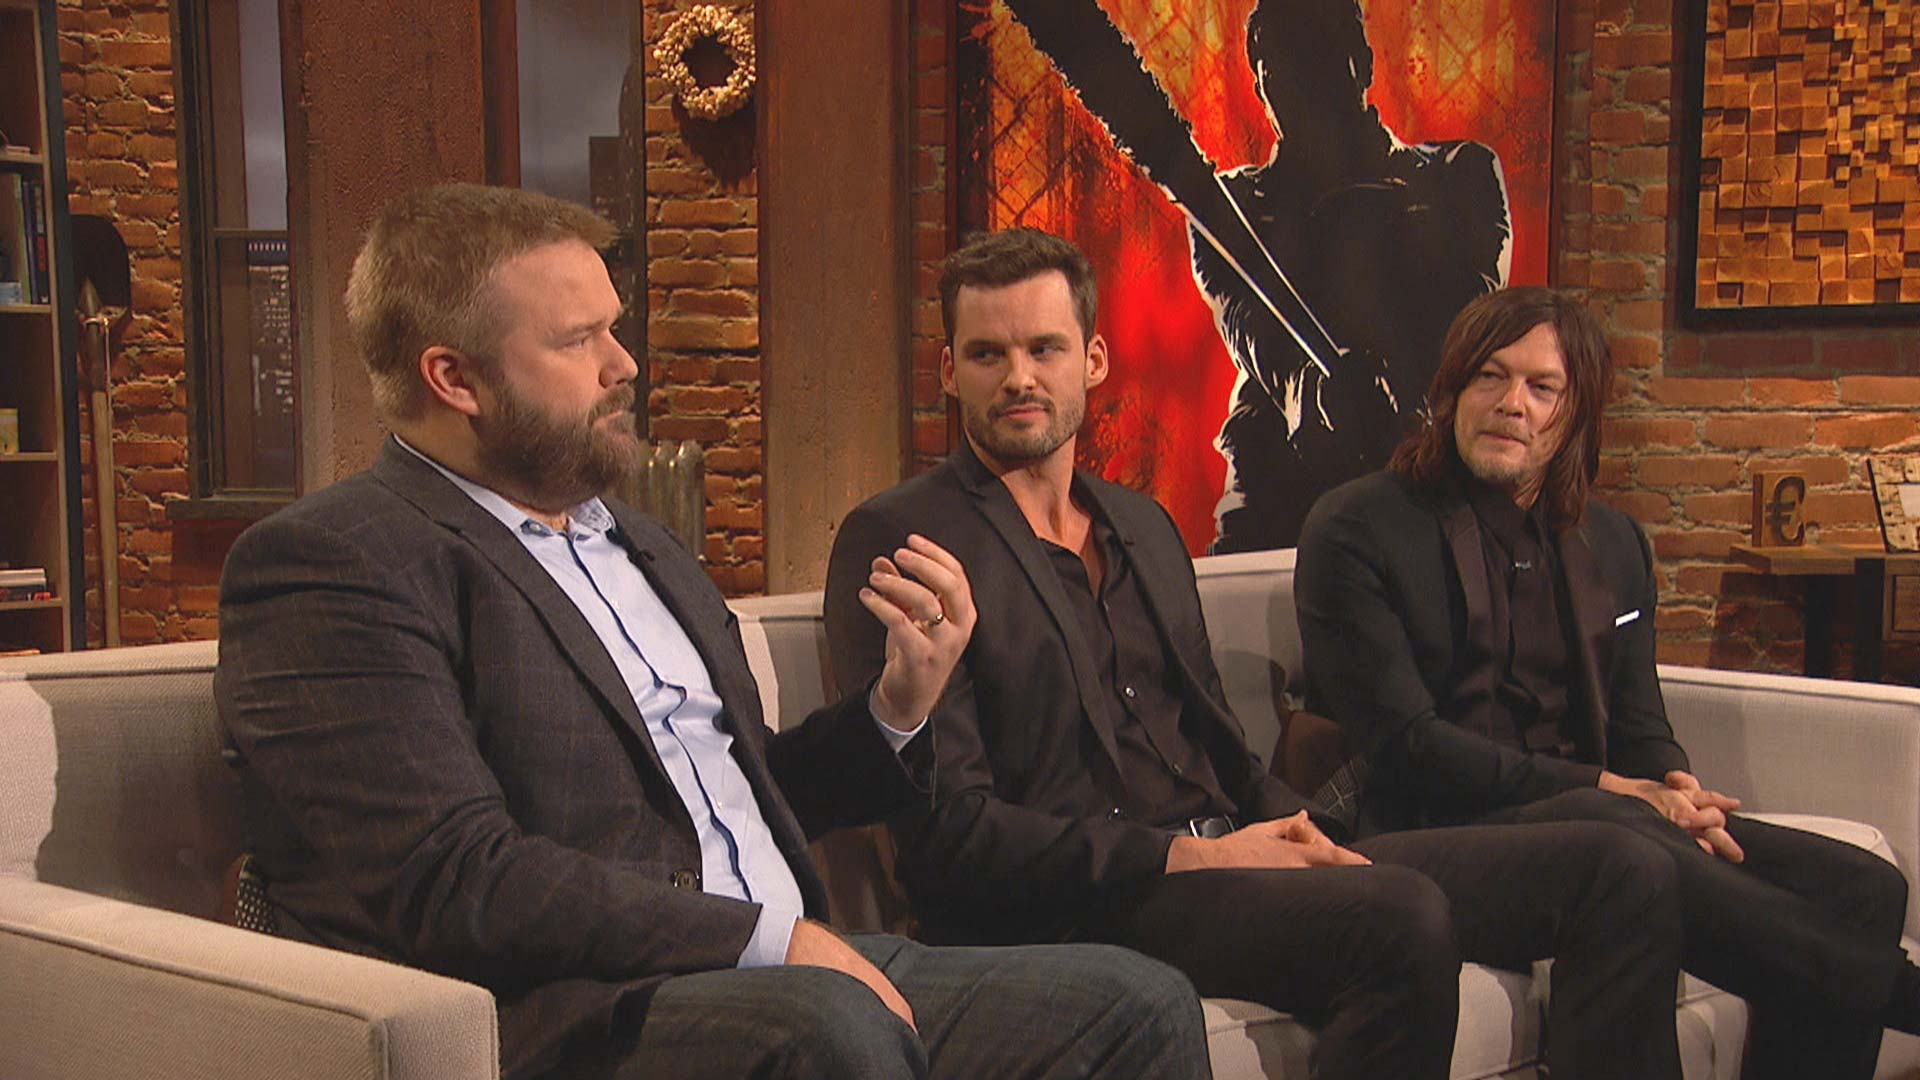 Highlights: Talking Dead: Season 7, Episode 8: Spill Your Guts